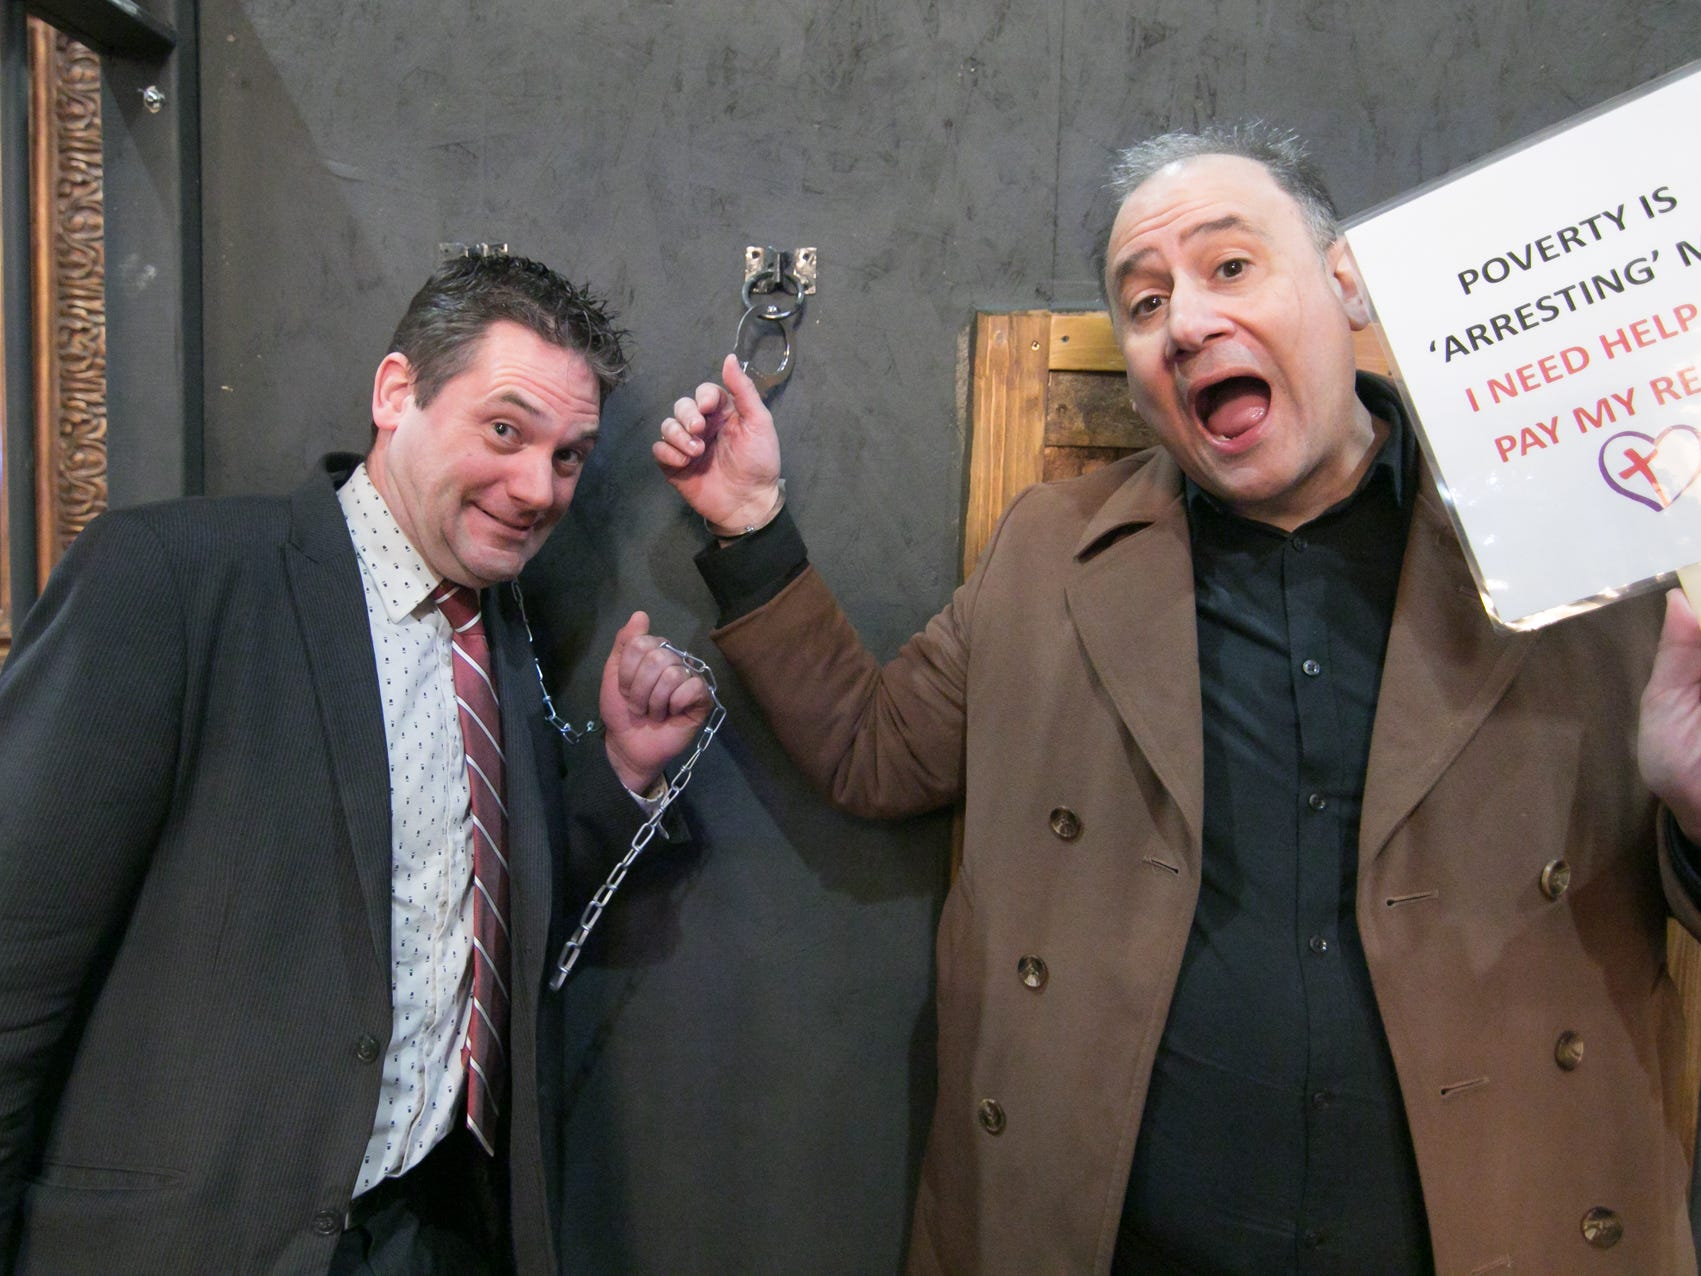 Jason Abbott, left, and comedian/emcee Harry Berberian are 'incarcerated,' needing $5 apiece to get them bailed out of jail at the Love, INC comedy night fundraiser Thursday, March 14, 2019.